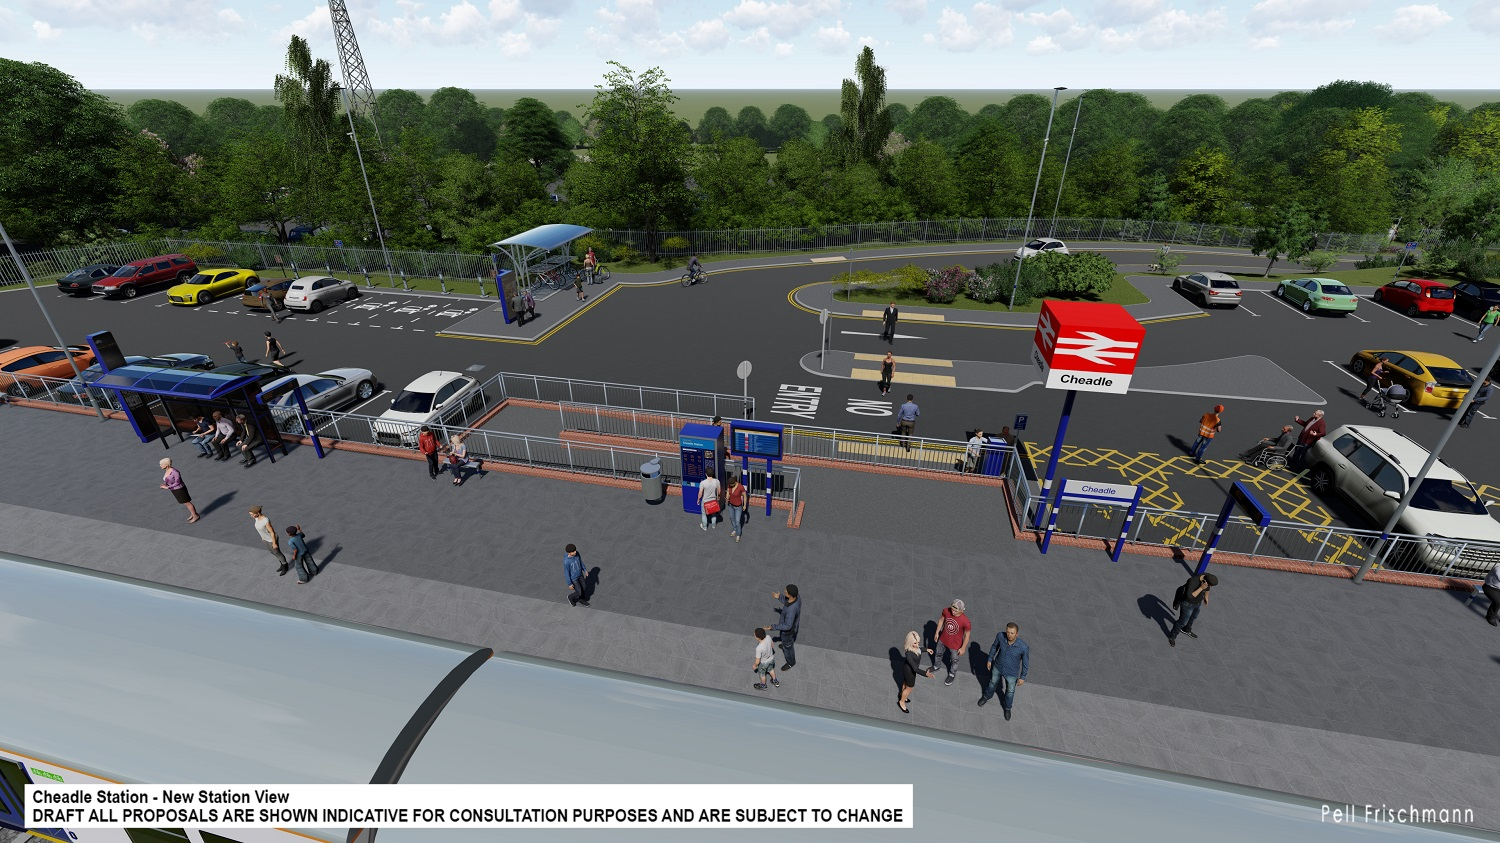 Residents asked to have their say on plans for new Railway Station